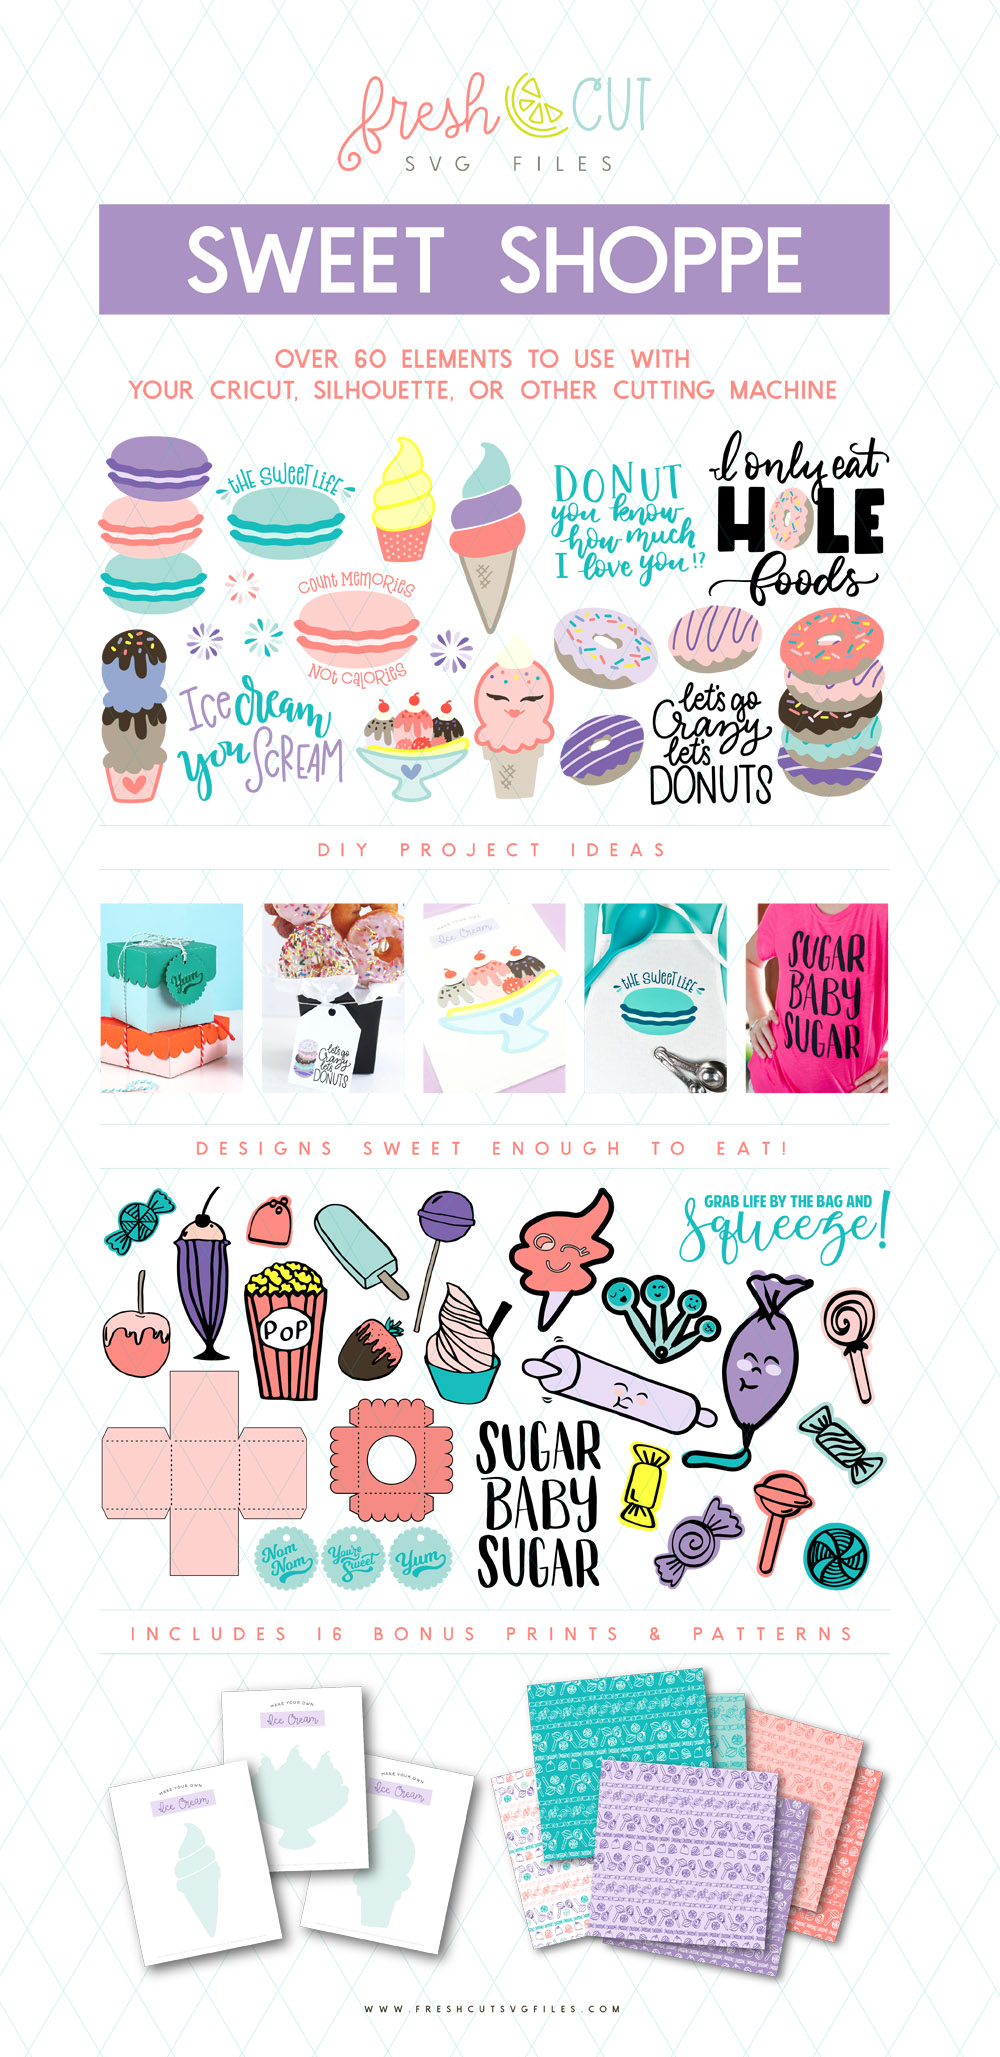 Fresh Cut Sweet Shoppe SVG Cut Files Bundle with Bonuses!